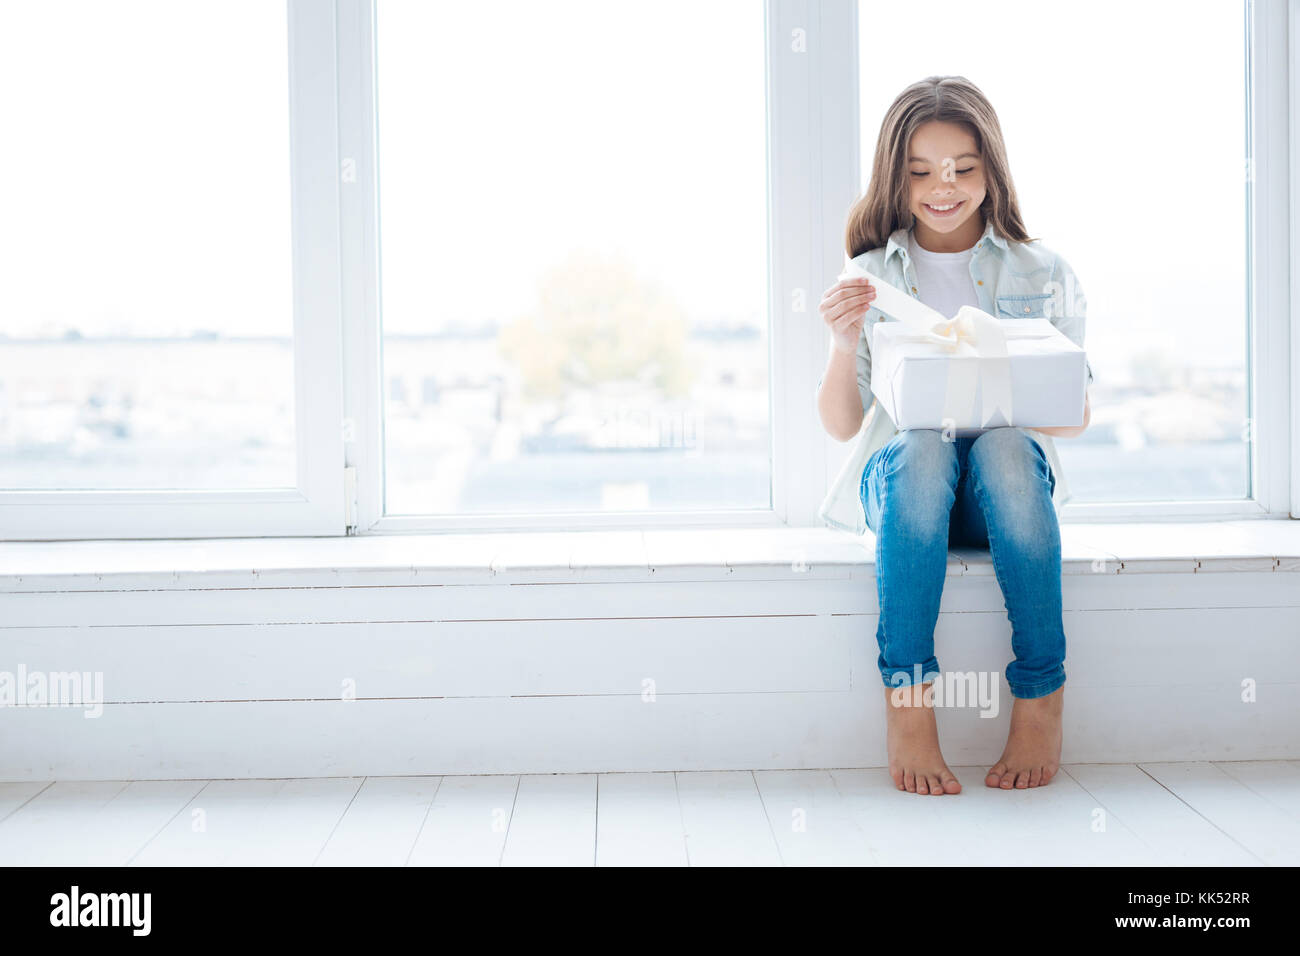 Great present. Window sill becomes recreating place for happy attractive little girl  who unpacking her present - Stock Image